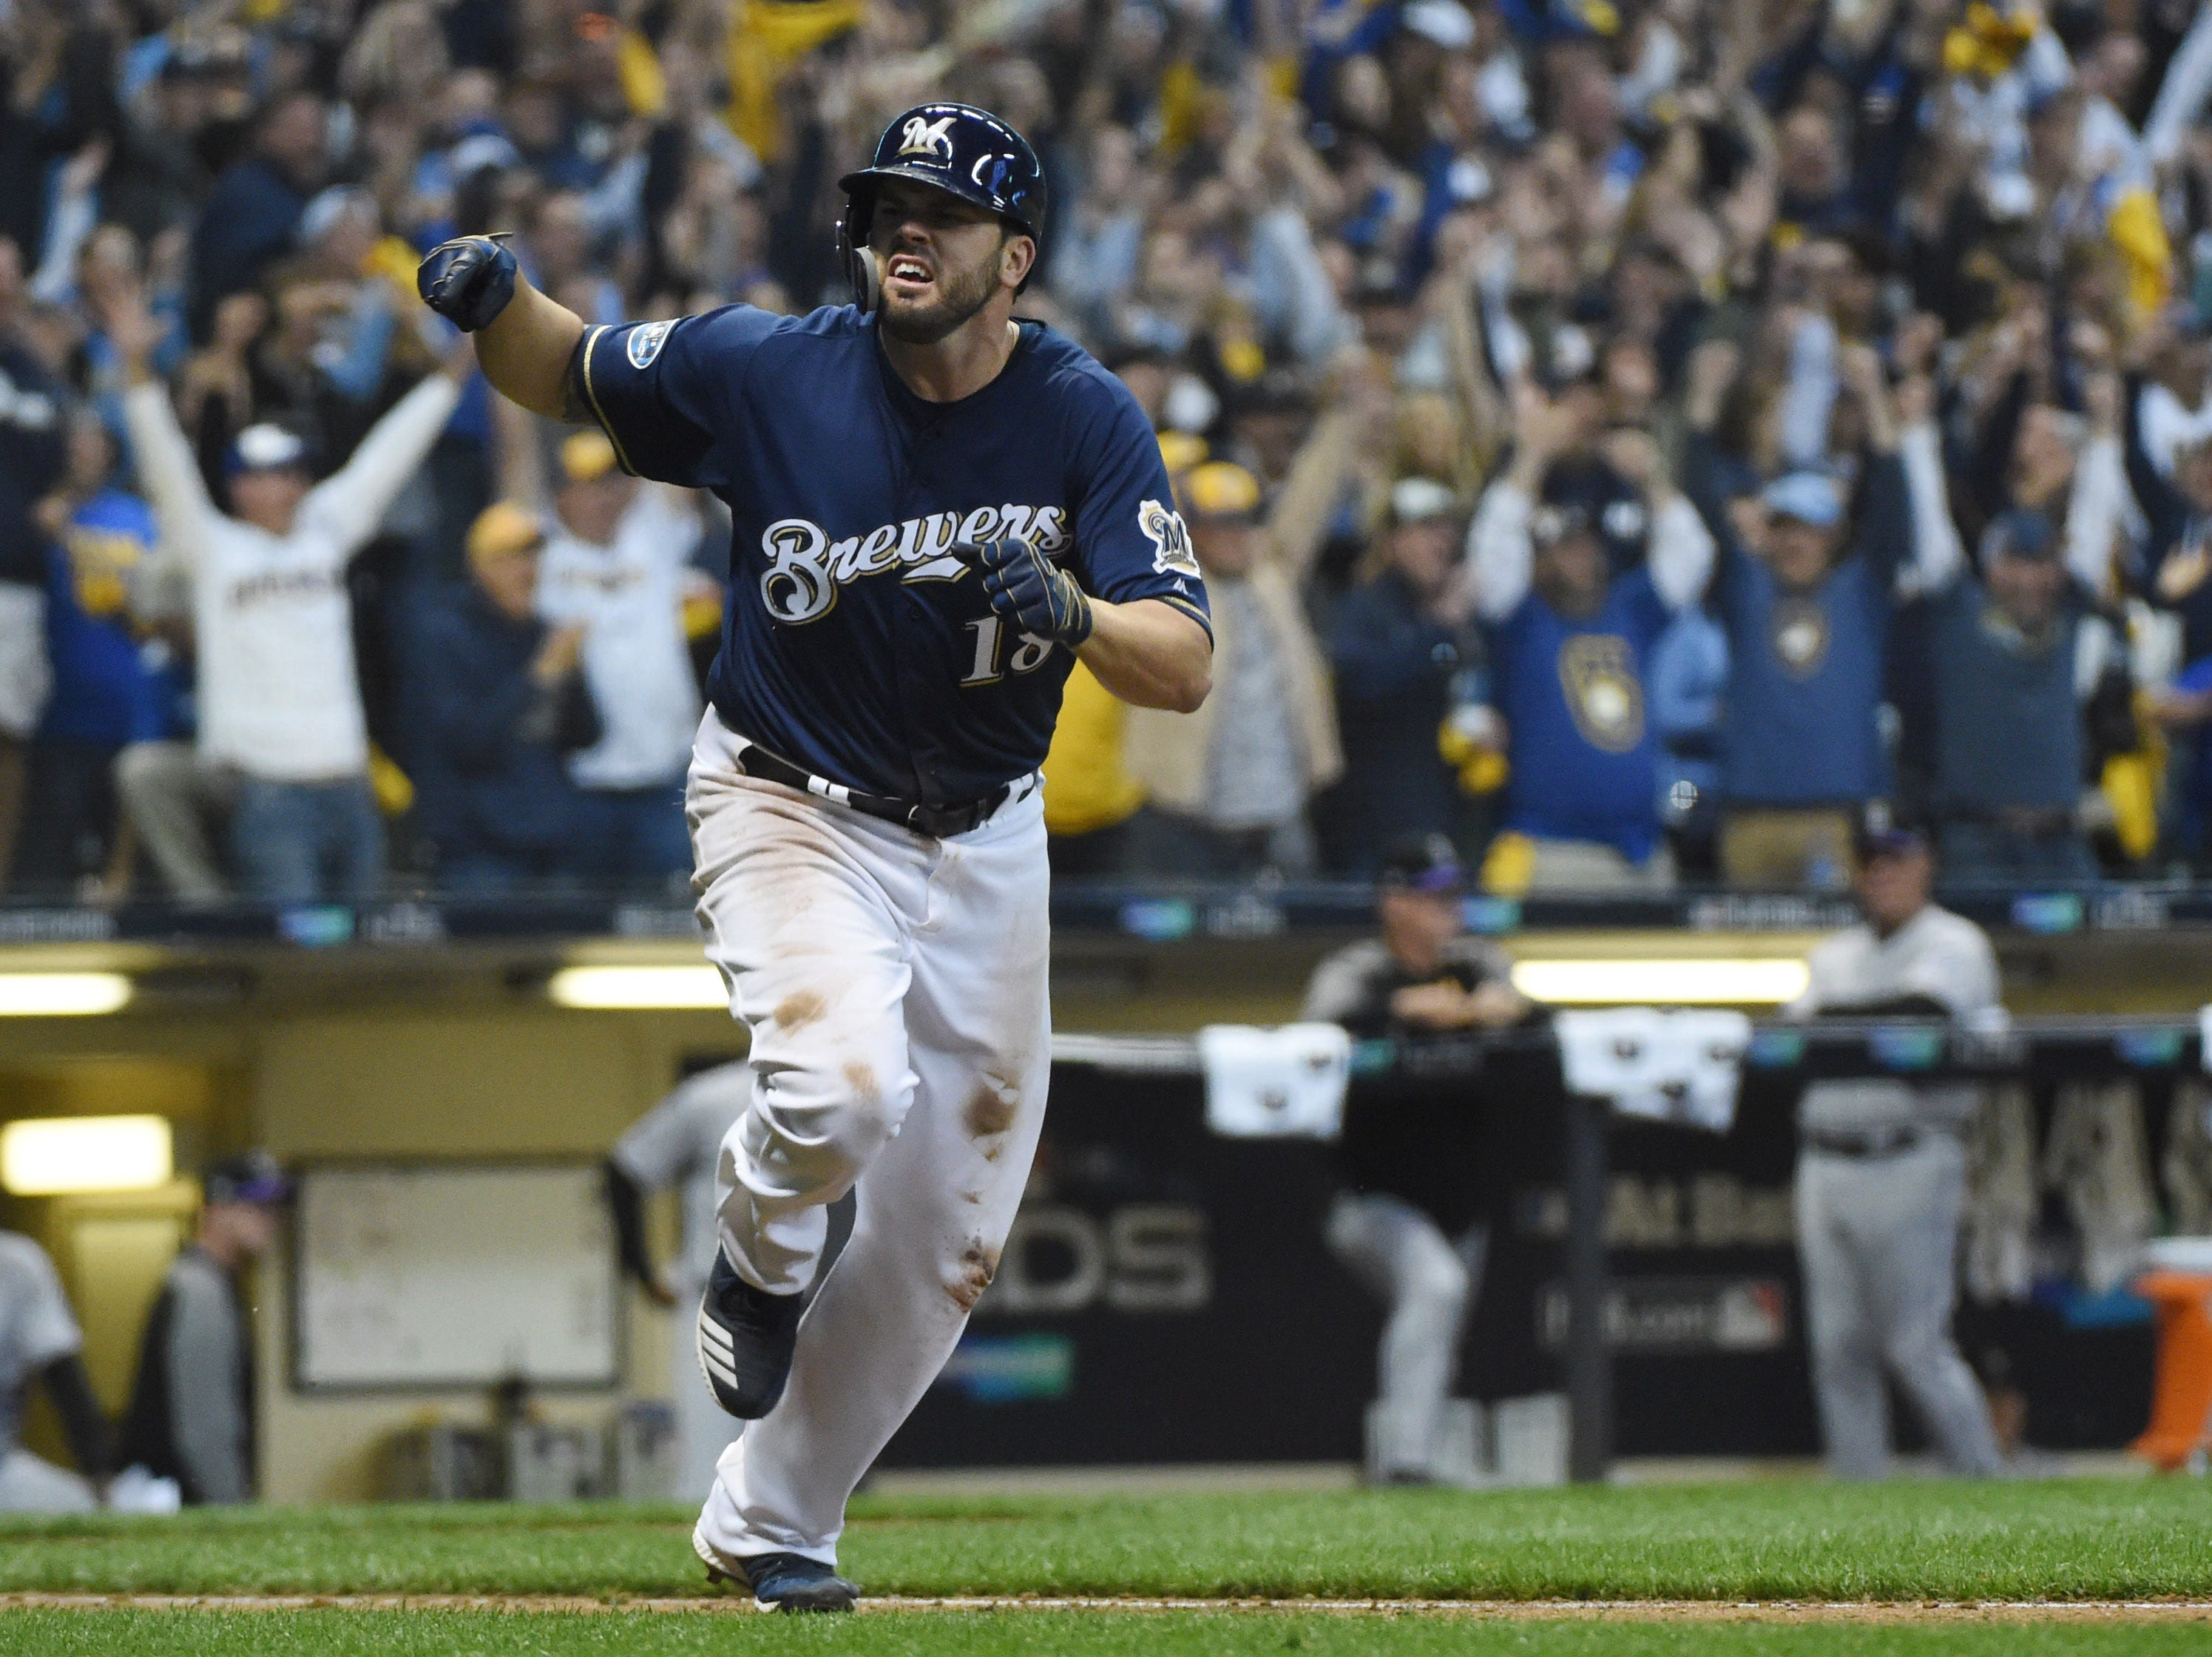 NLDS Game 1: Mike Moustakas celebrates his walk-off RBI single in the 10th inning.